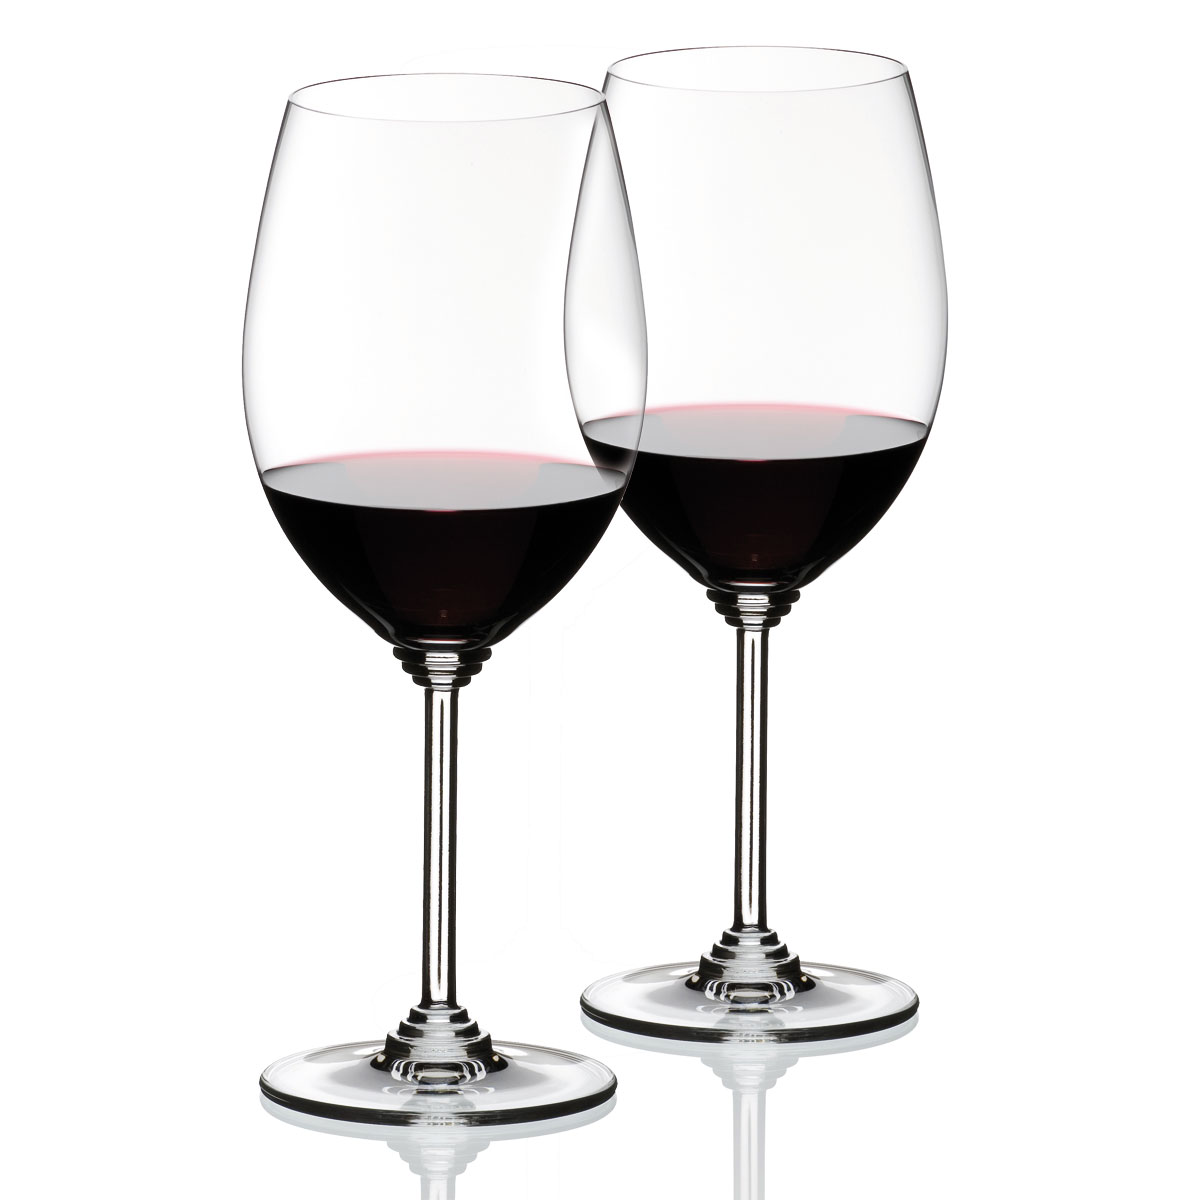 Riedel Wine, Cabernet, Merlot Wine Glasses, Pair